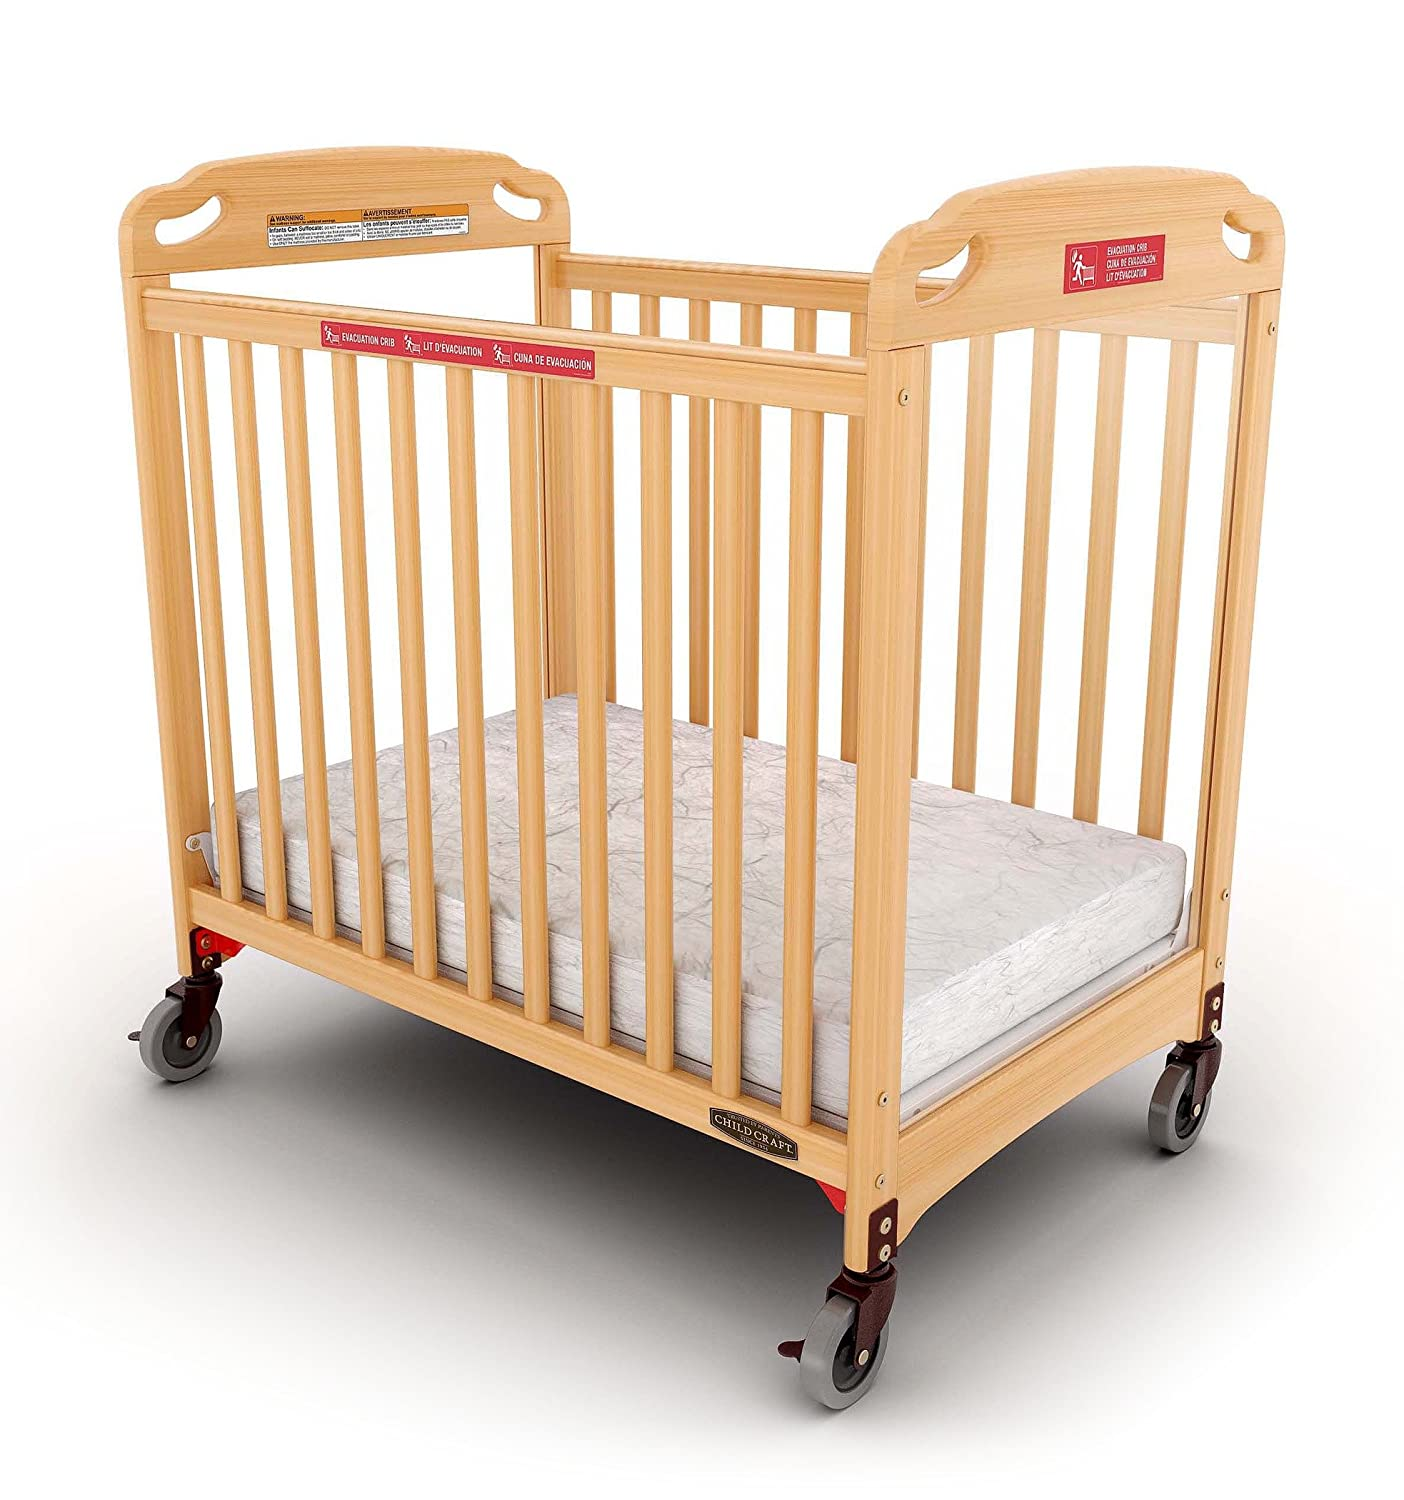 Child Craft Safe Haven Daycare Evacuation Compact Crib with Casters, Natural Foundations Worldwide Inc. F99042.04